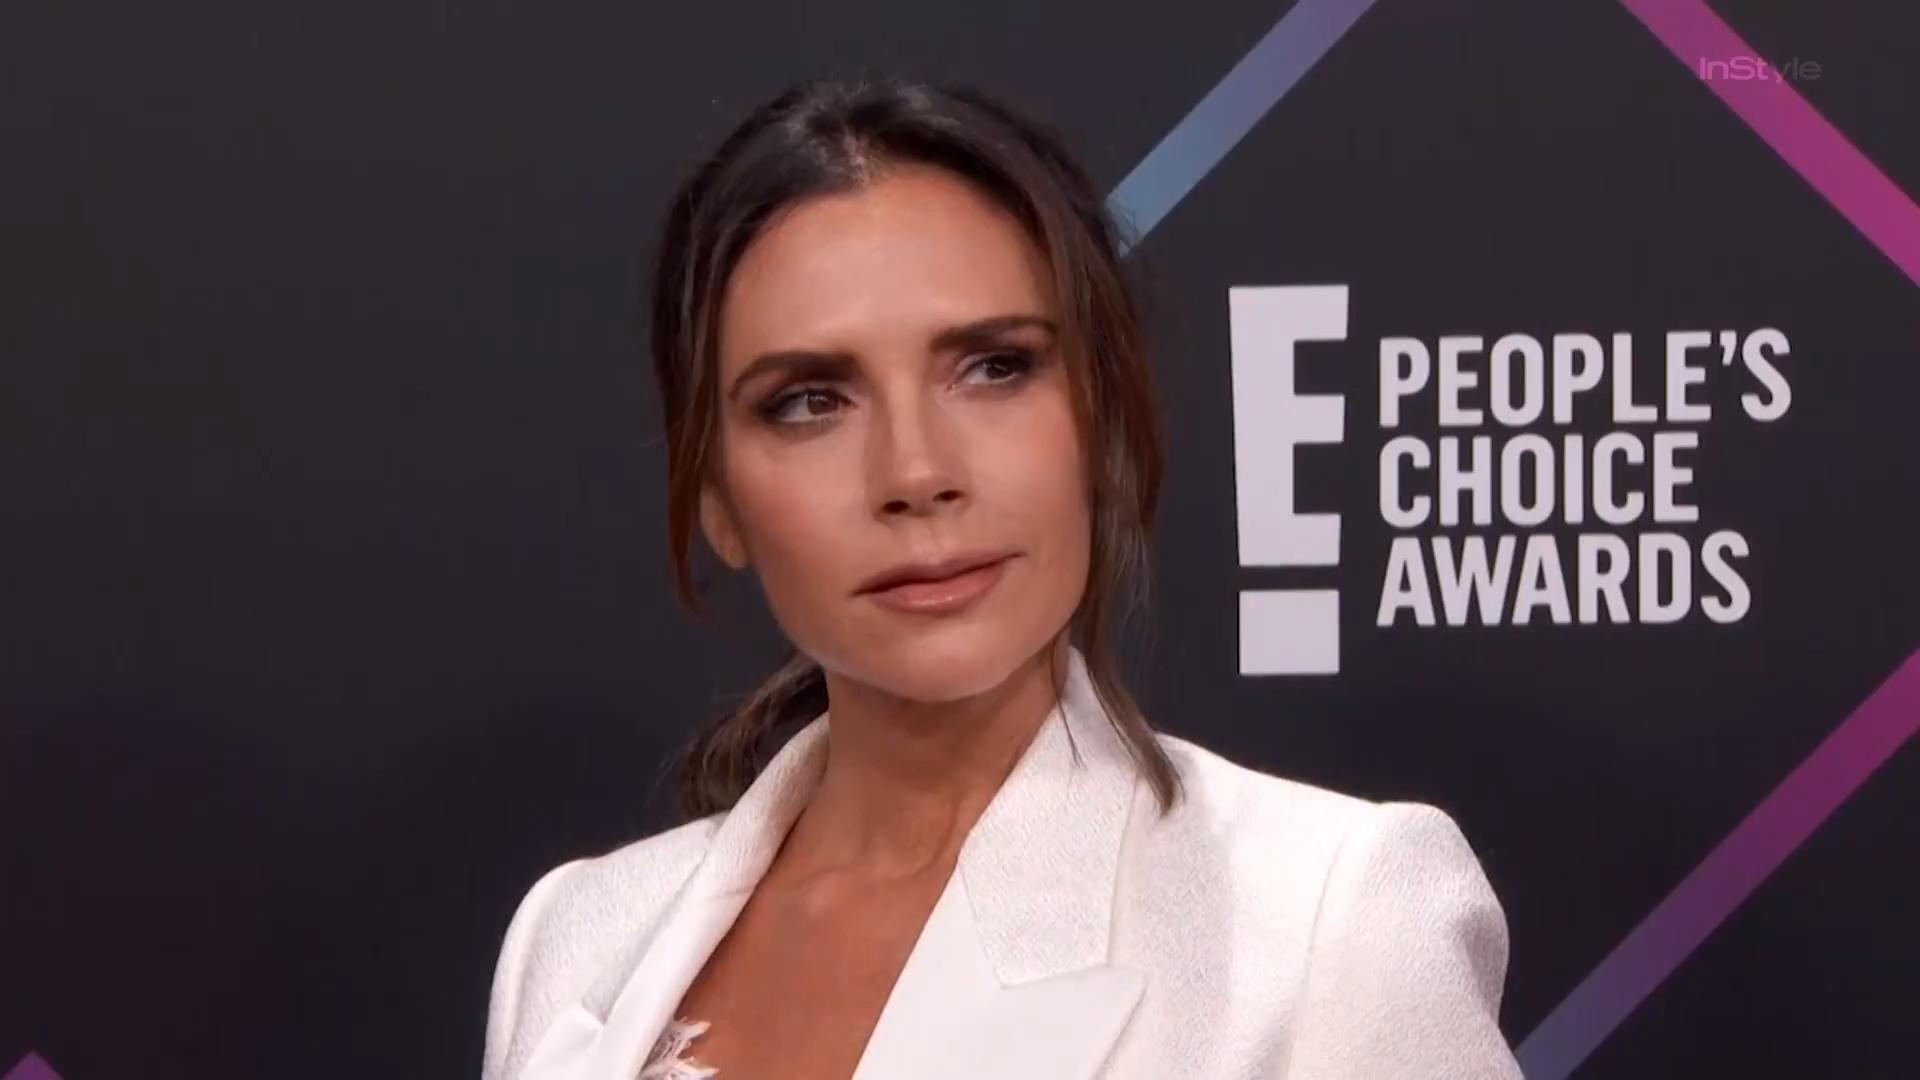 Victoria Beckham Needed an Outfit for the People's Choice Awards, So She Made It Herself